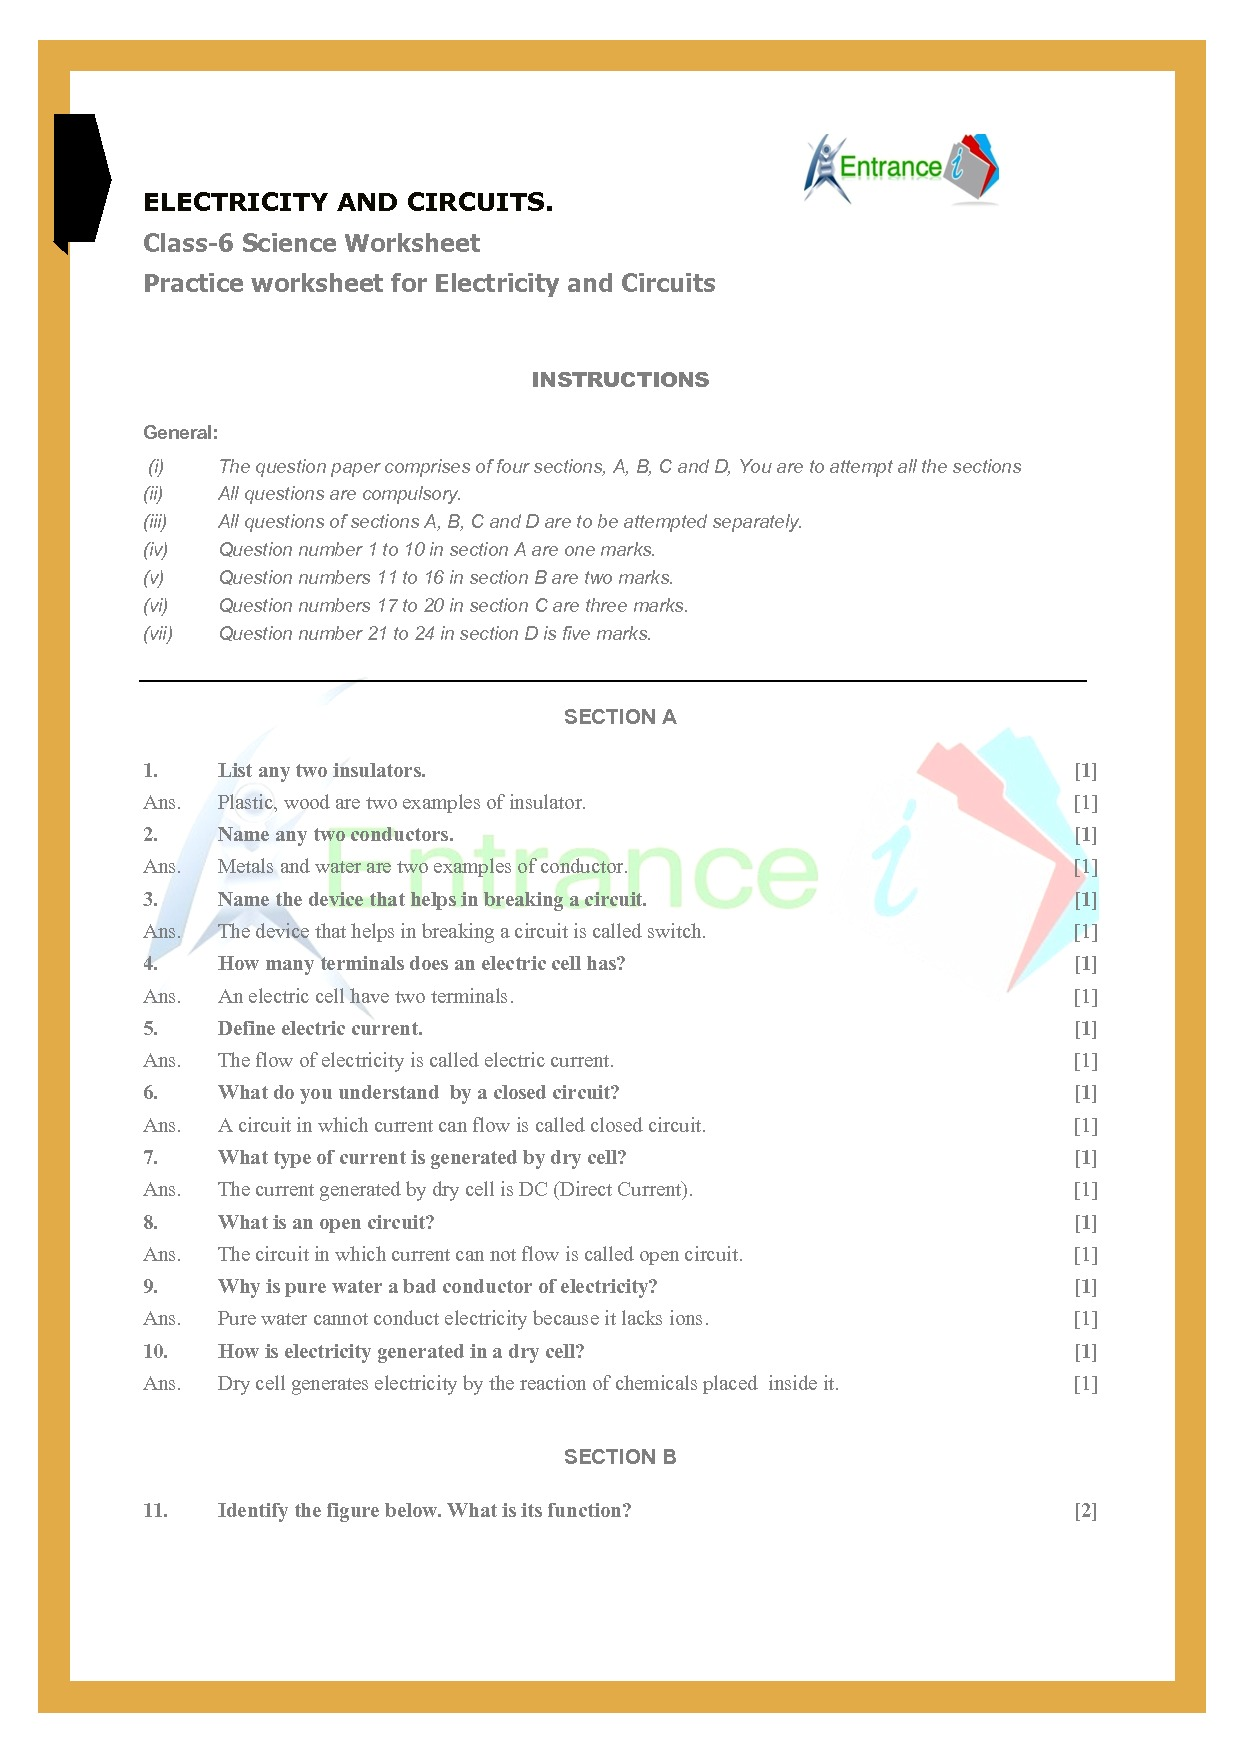 hight resolution of class 6 science worksheets Chapter 12-Electricity and Circuits